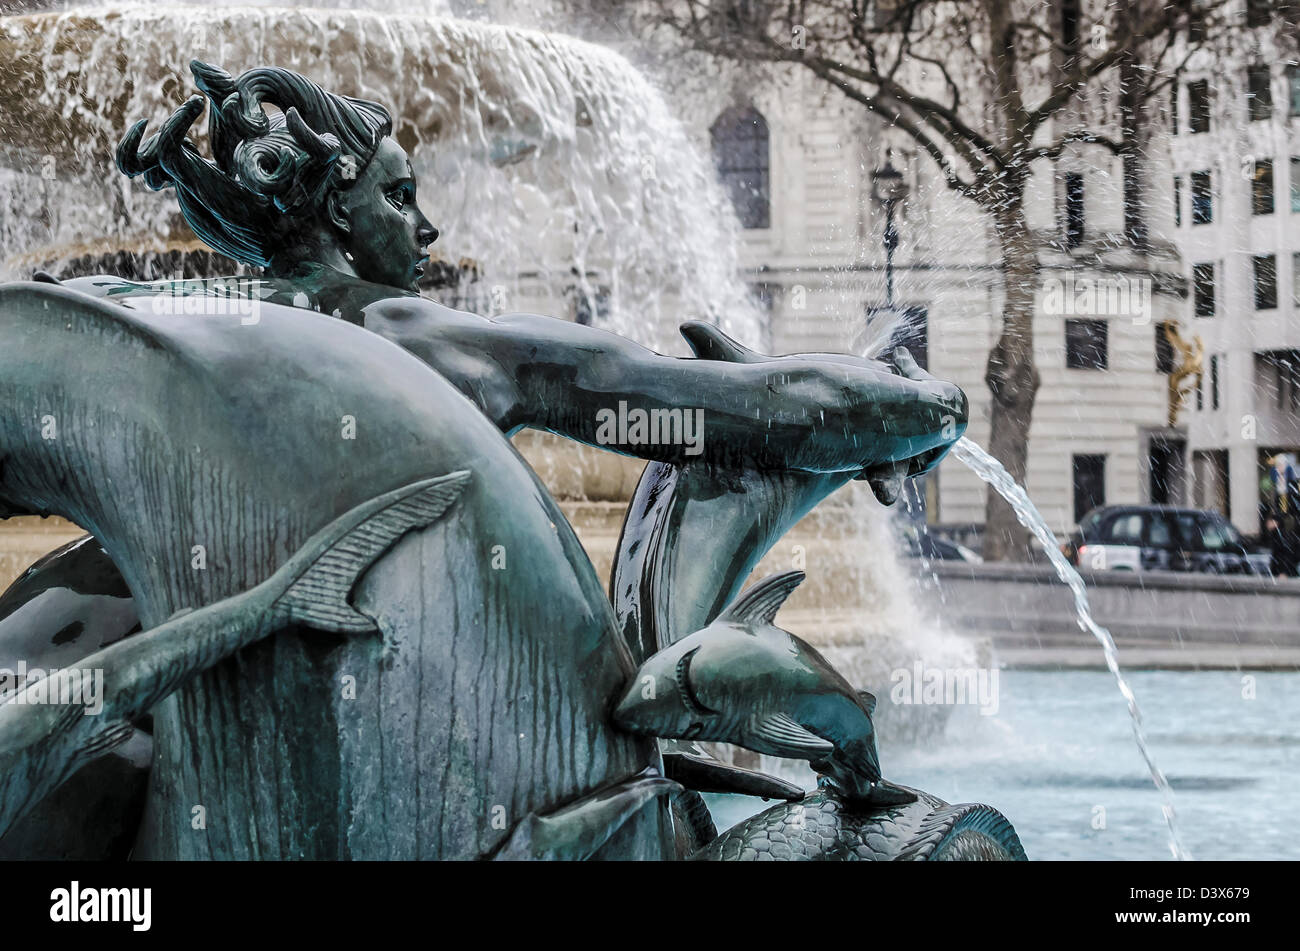 Trafalgar Square Mermaid water Fountains, in Central London - Stock Image